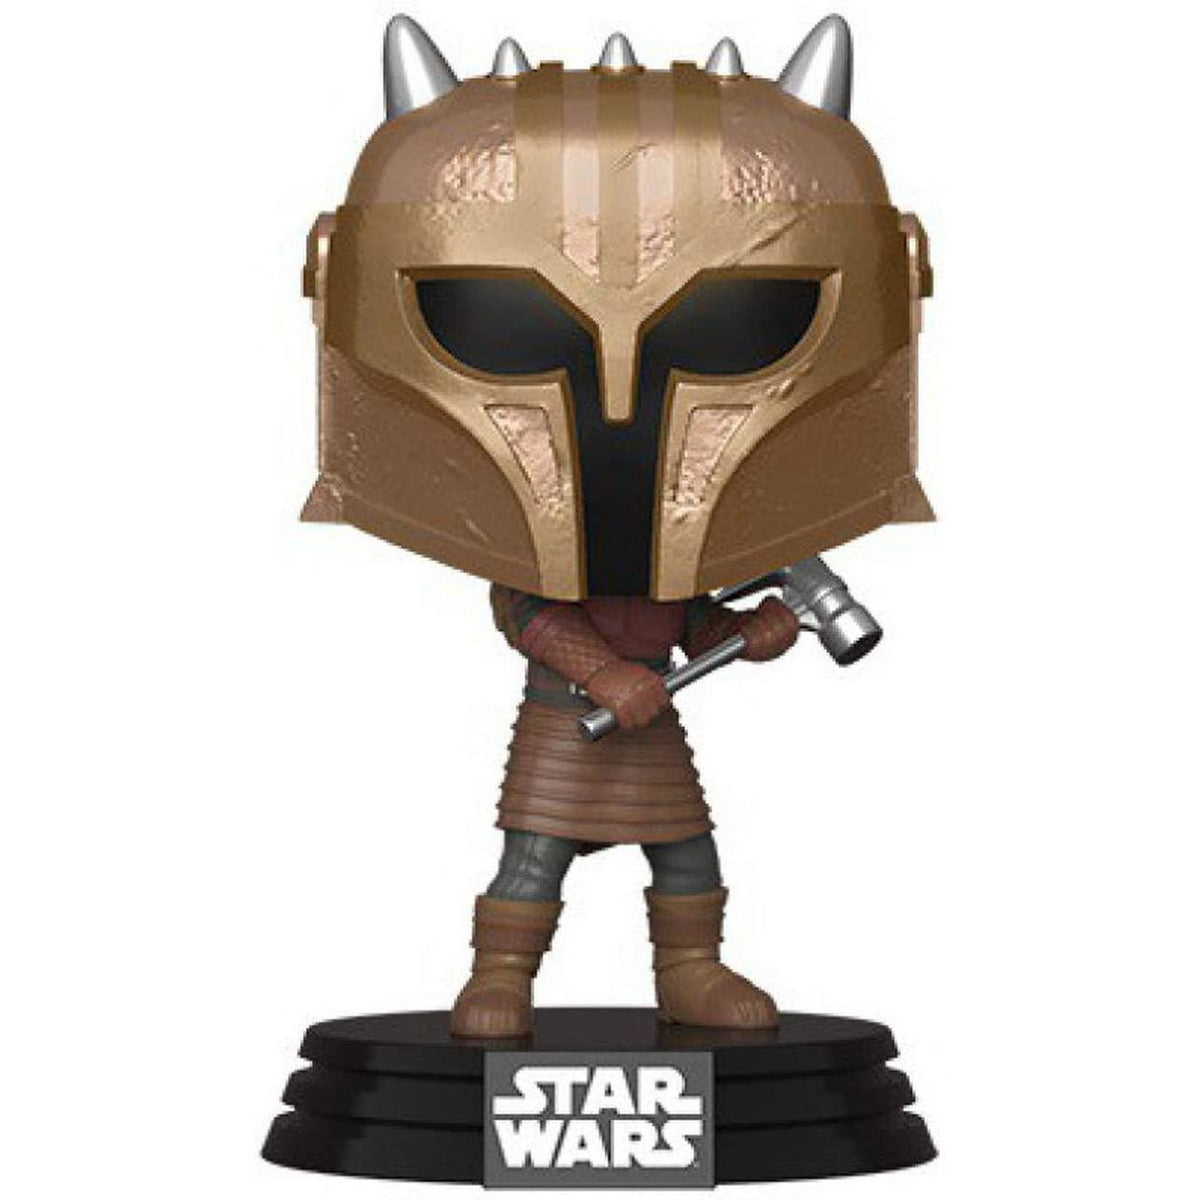 FUNKO POP STAR WARS: THE MANDALORIAN THE ARMORER VINYL FIGURE